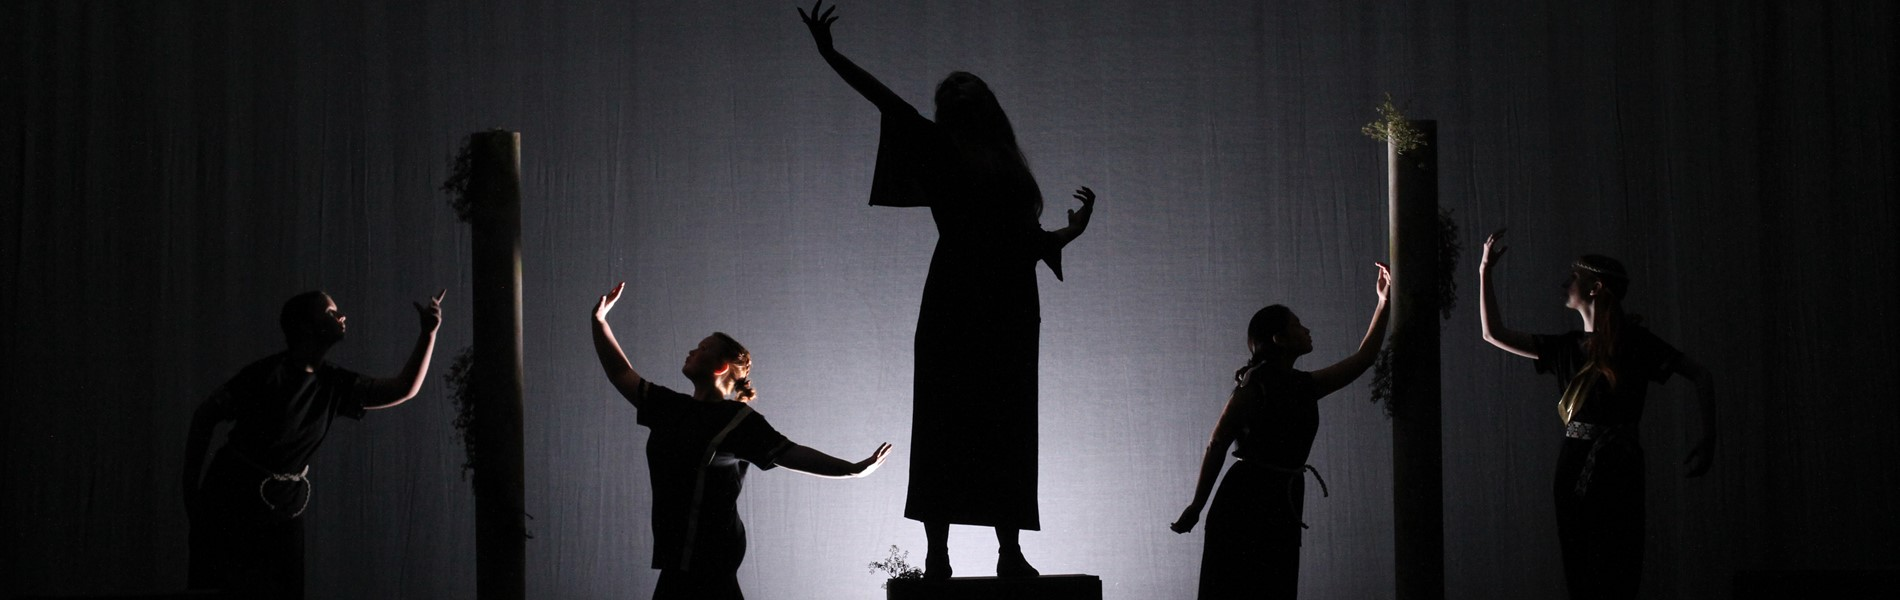 Pierce County High School One Act Play Team performing Antigone